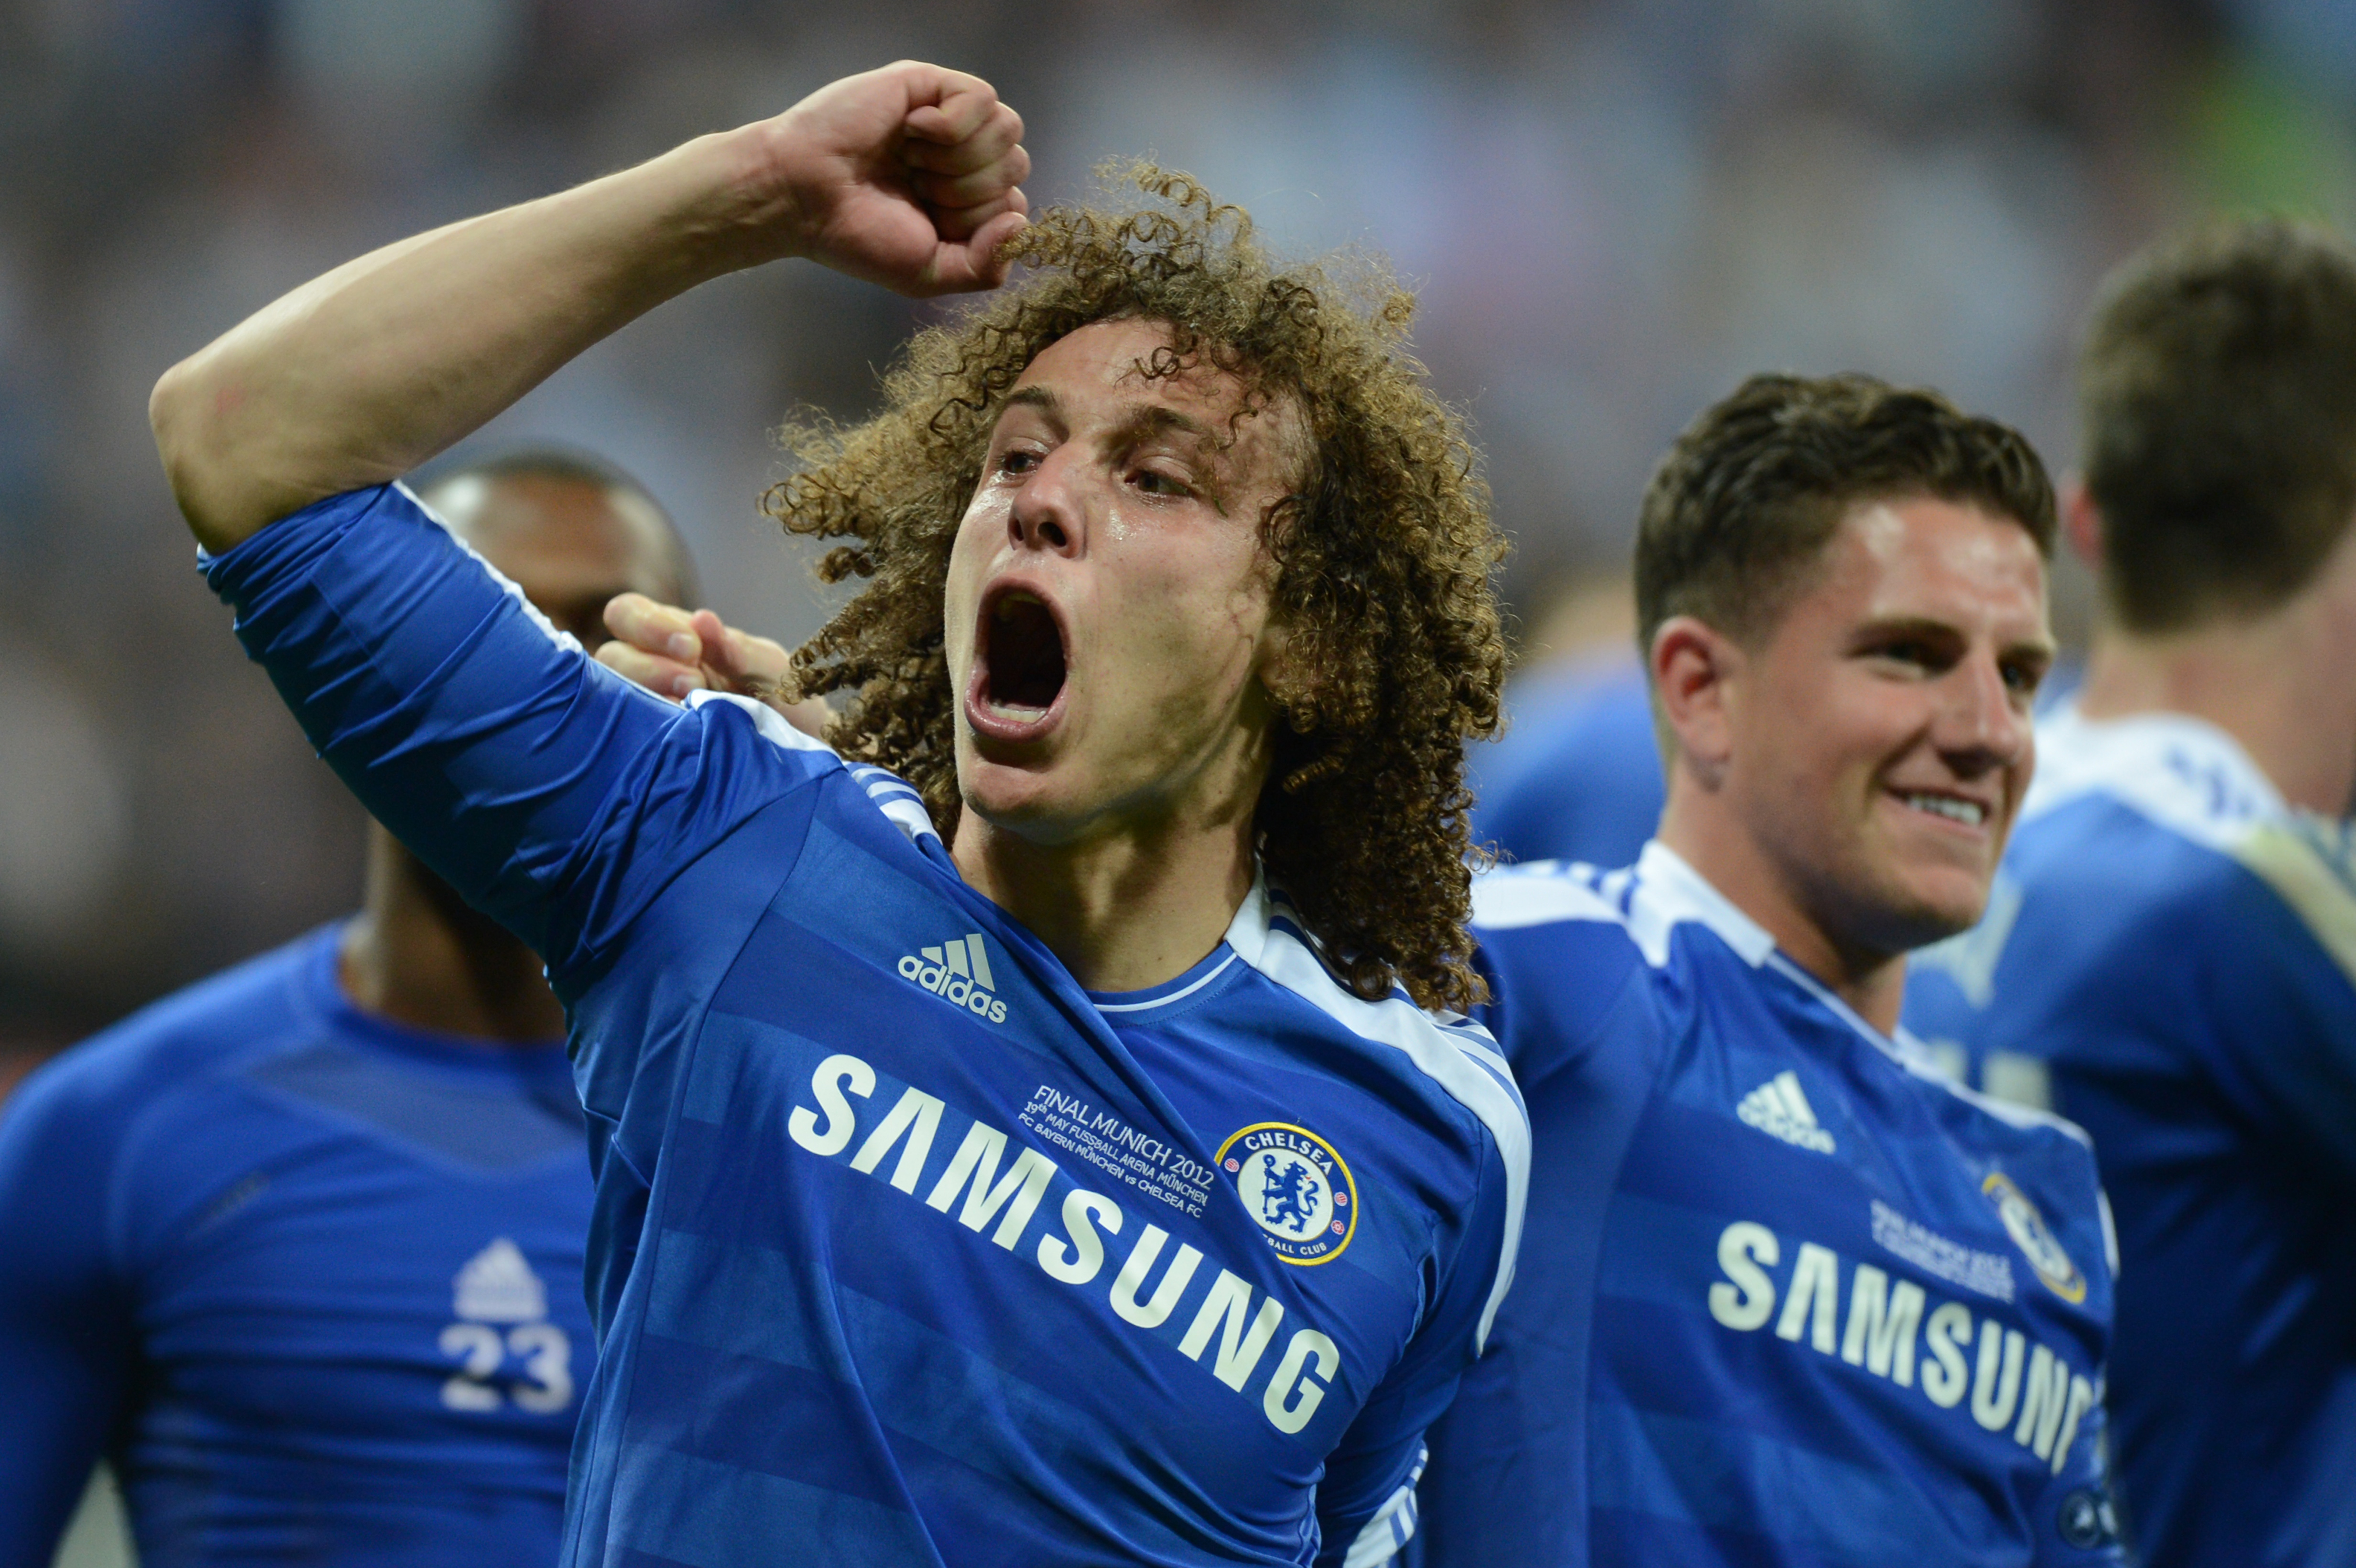 Relax, You're Remembering the Wrong David Luiz